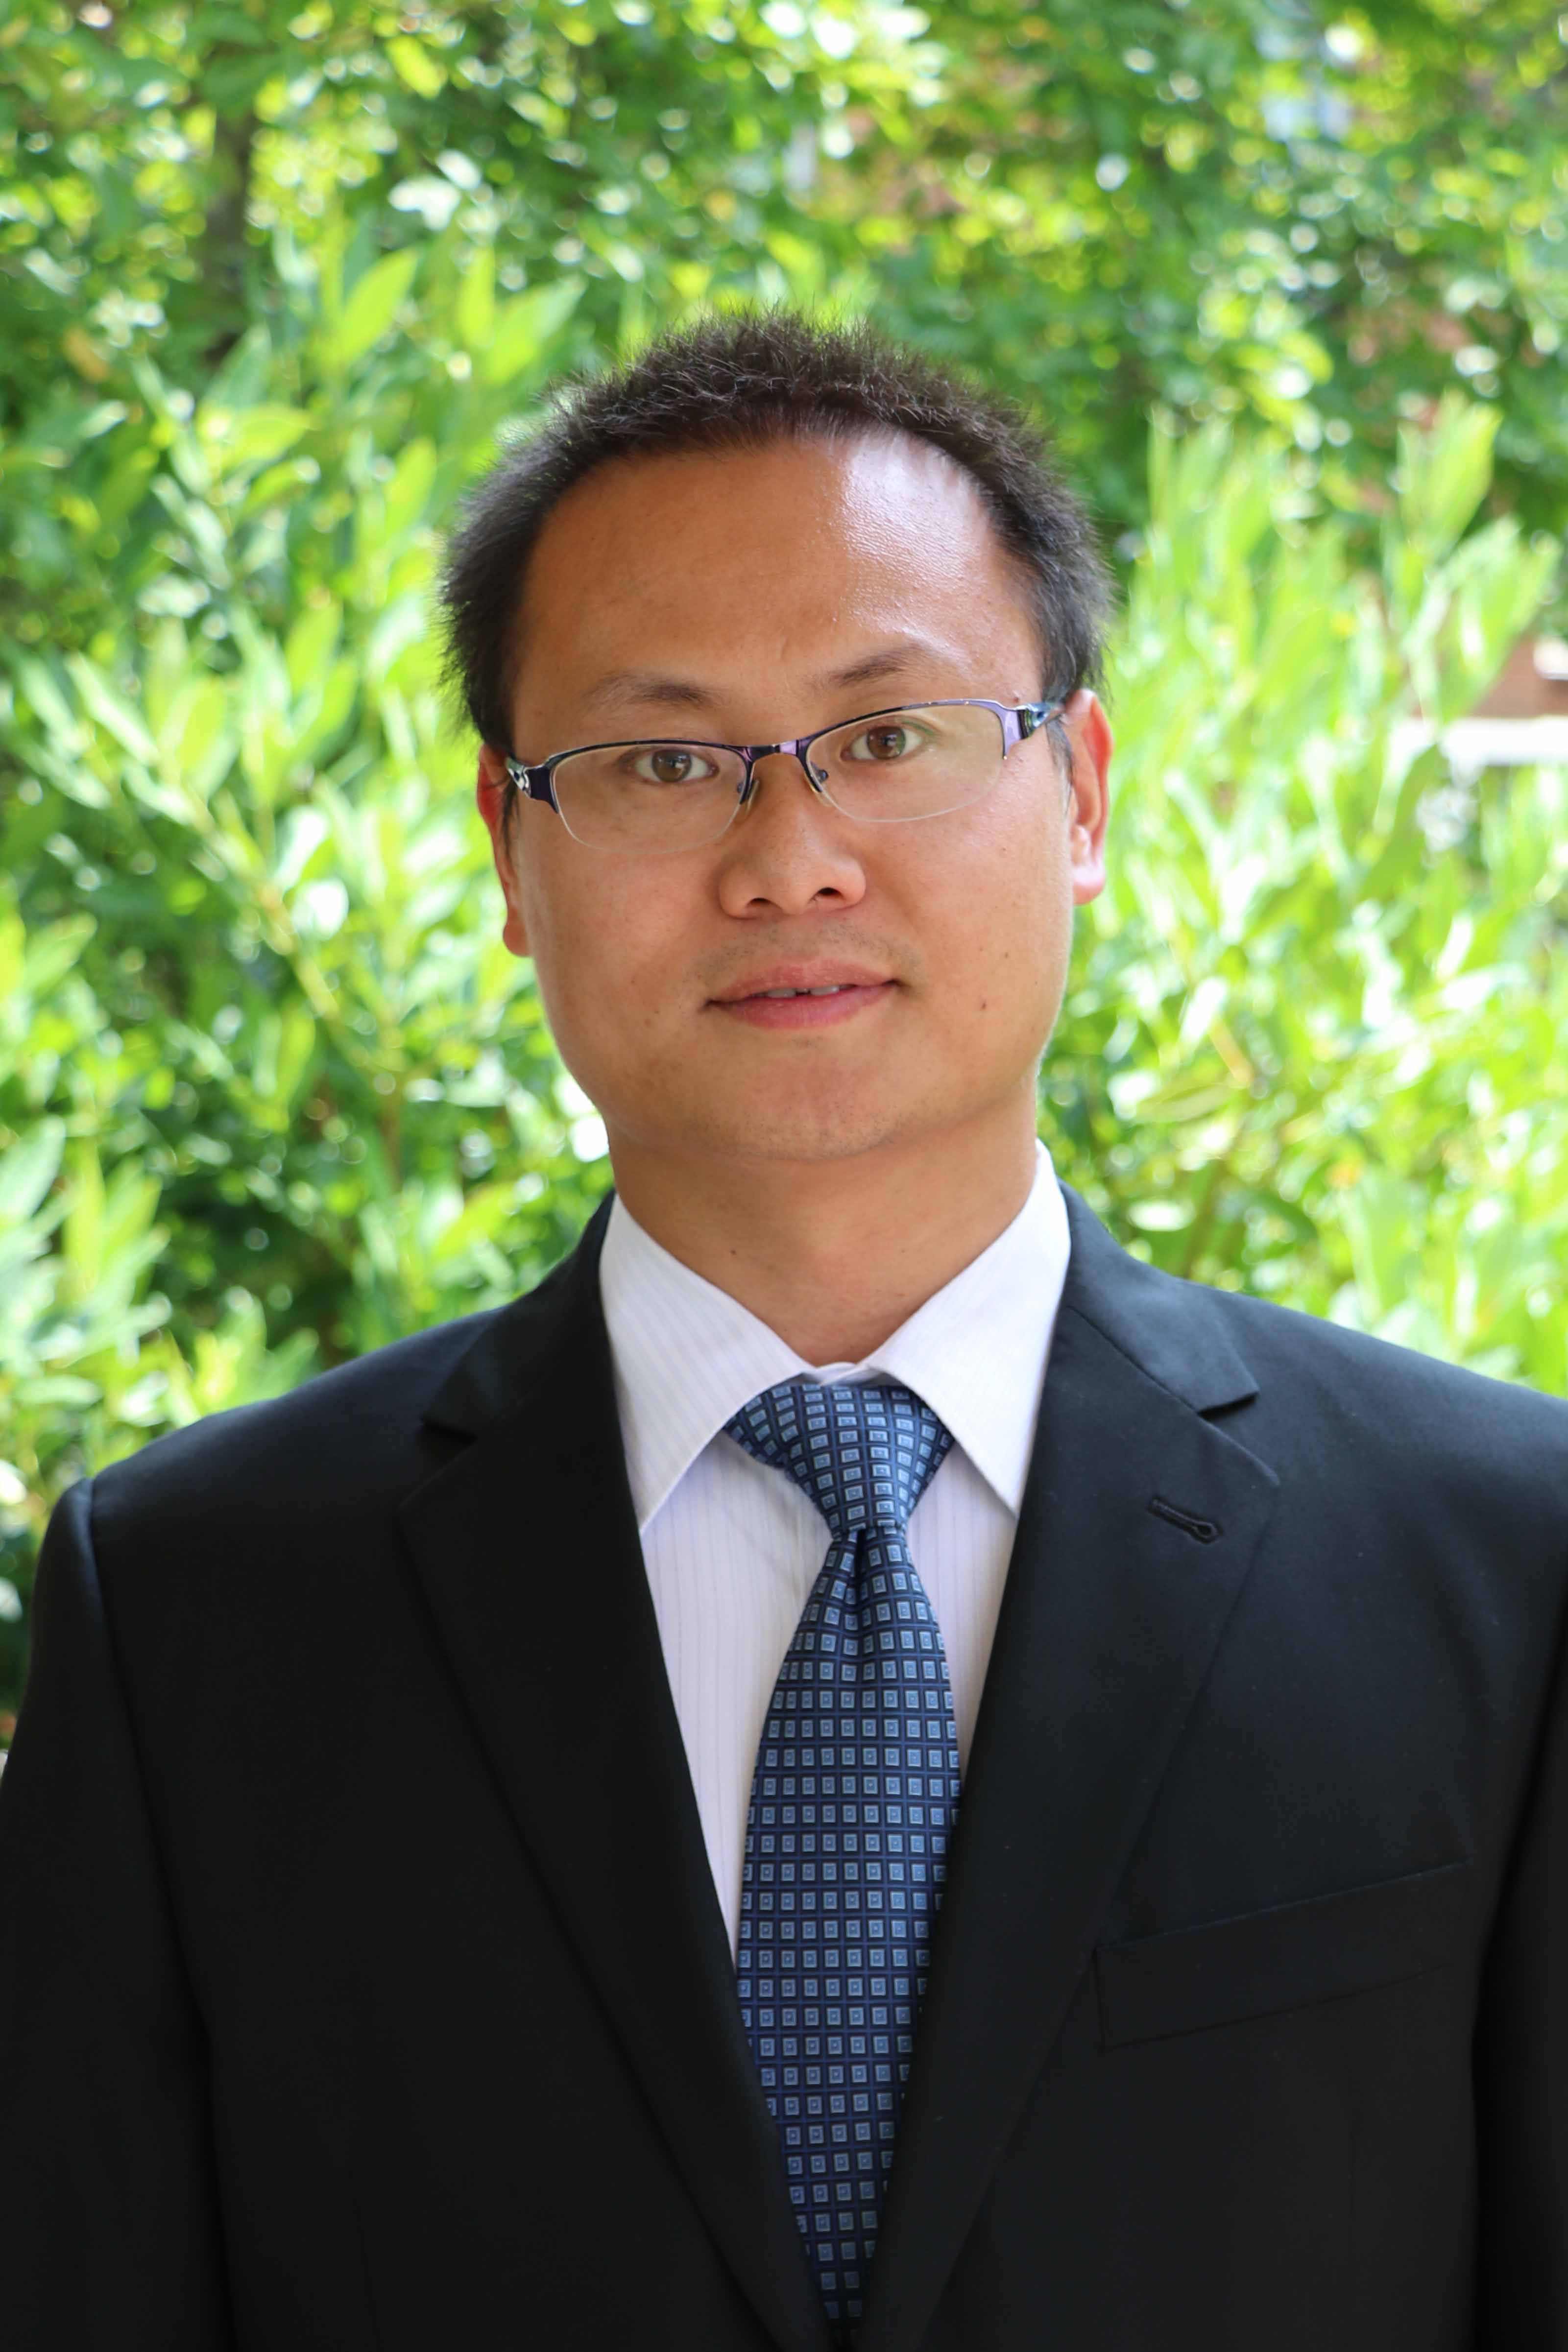 Assistant Professor Lilong Chai was awarded the American Society of Agricultural and Biological Engineers' 2021 Sunkist Young Designer Award.